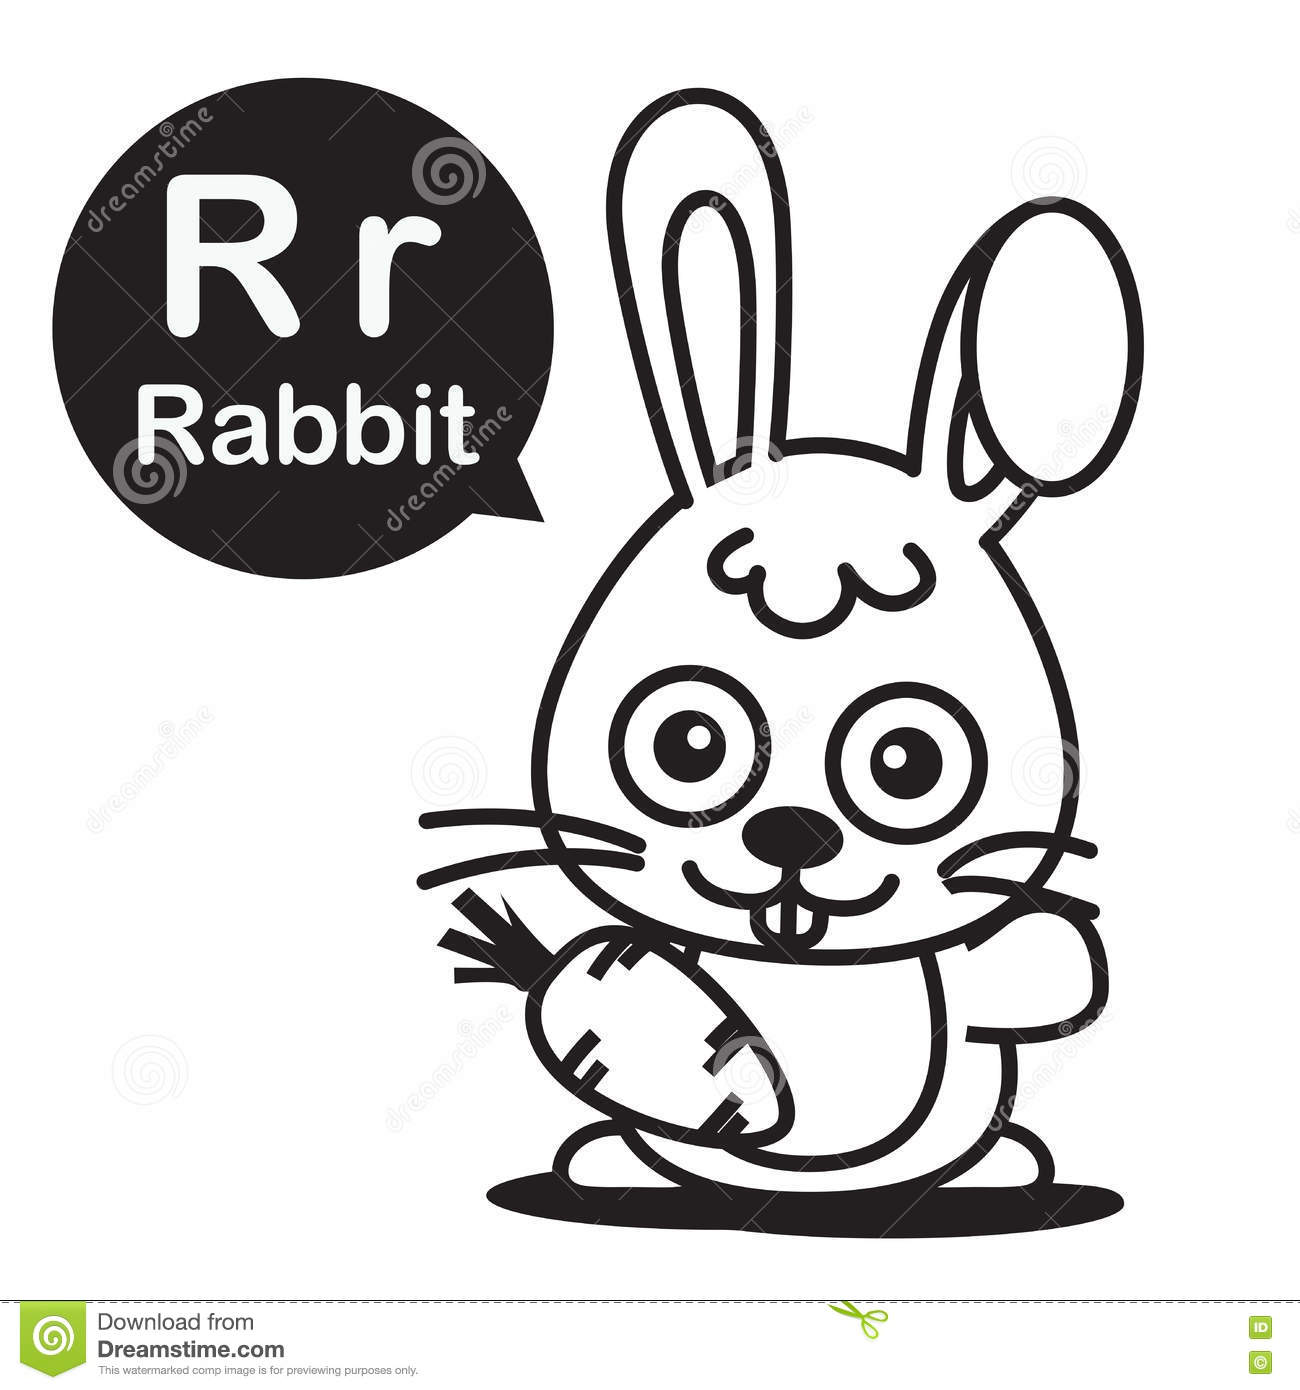 R Rabbit Cartoon And Alphabet For Children To Learning And